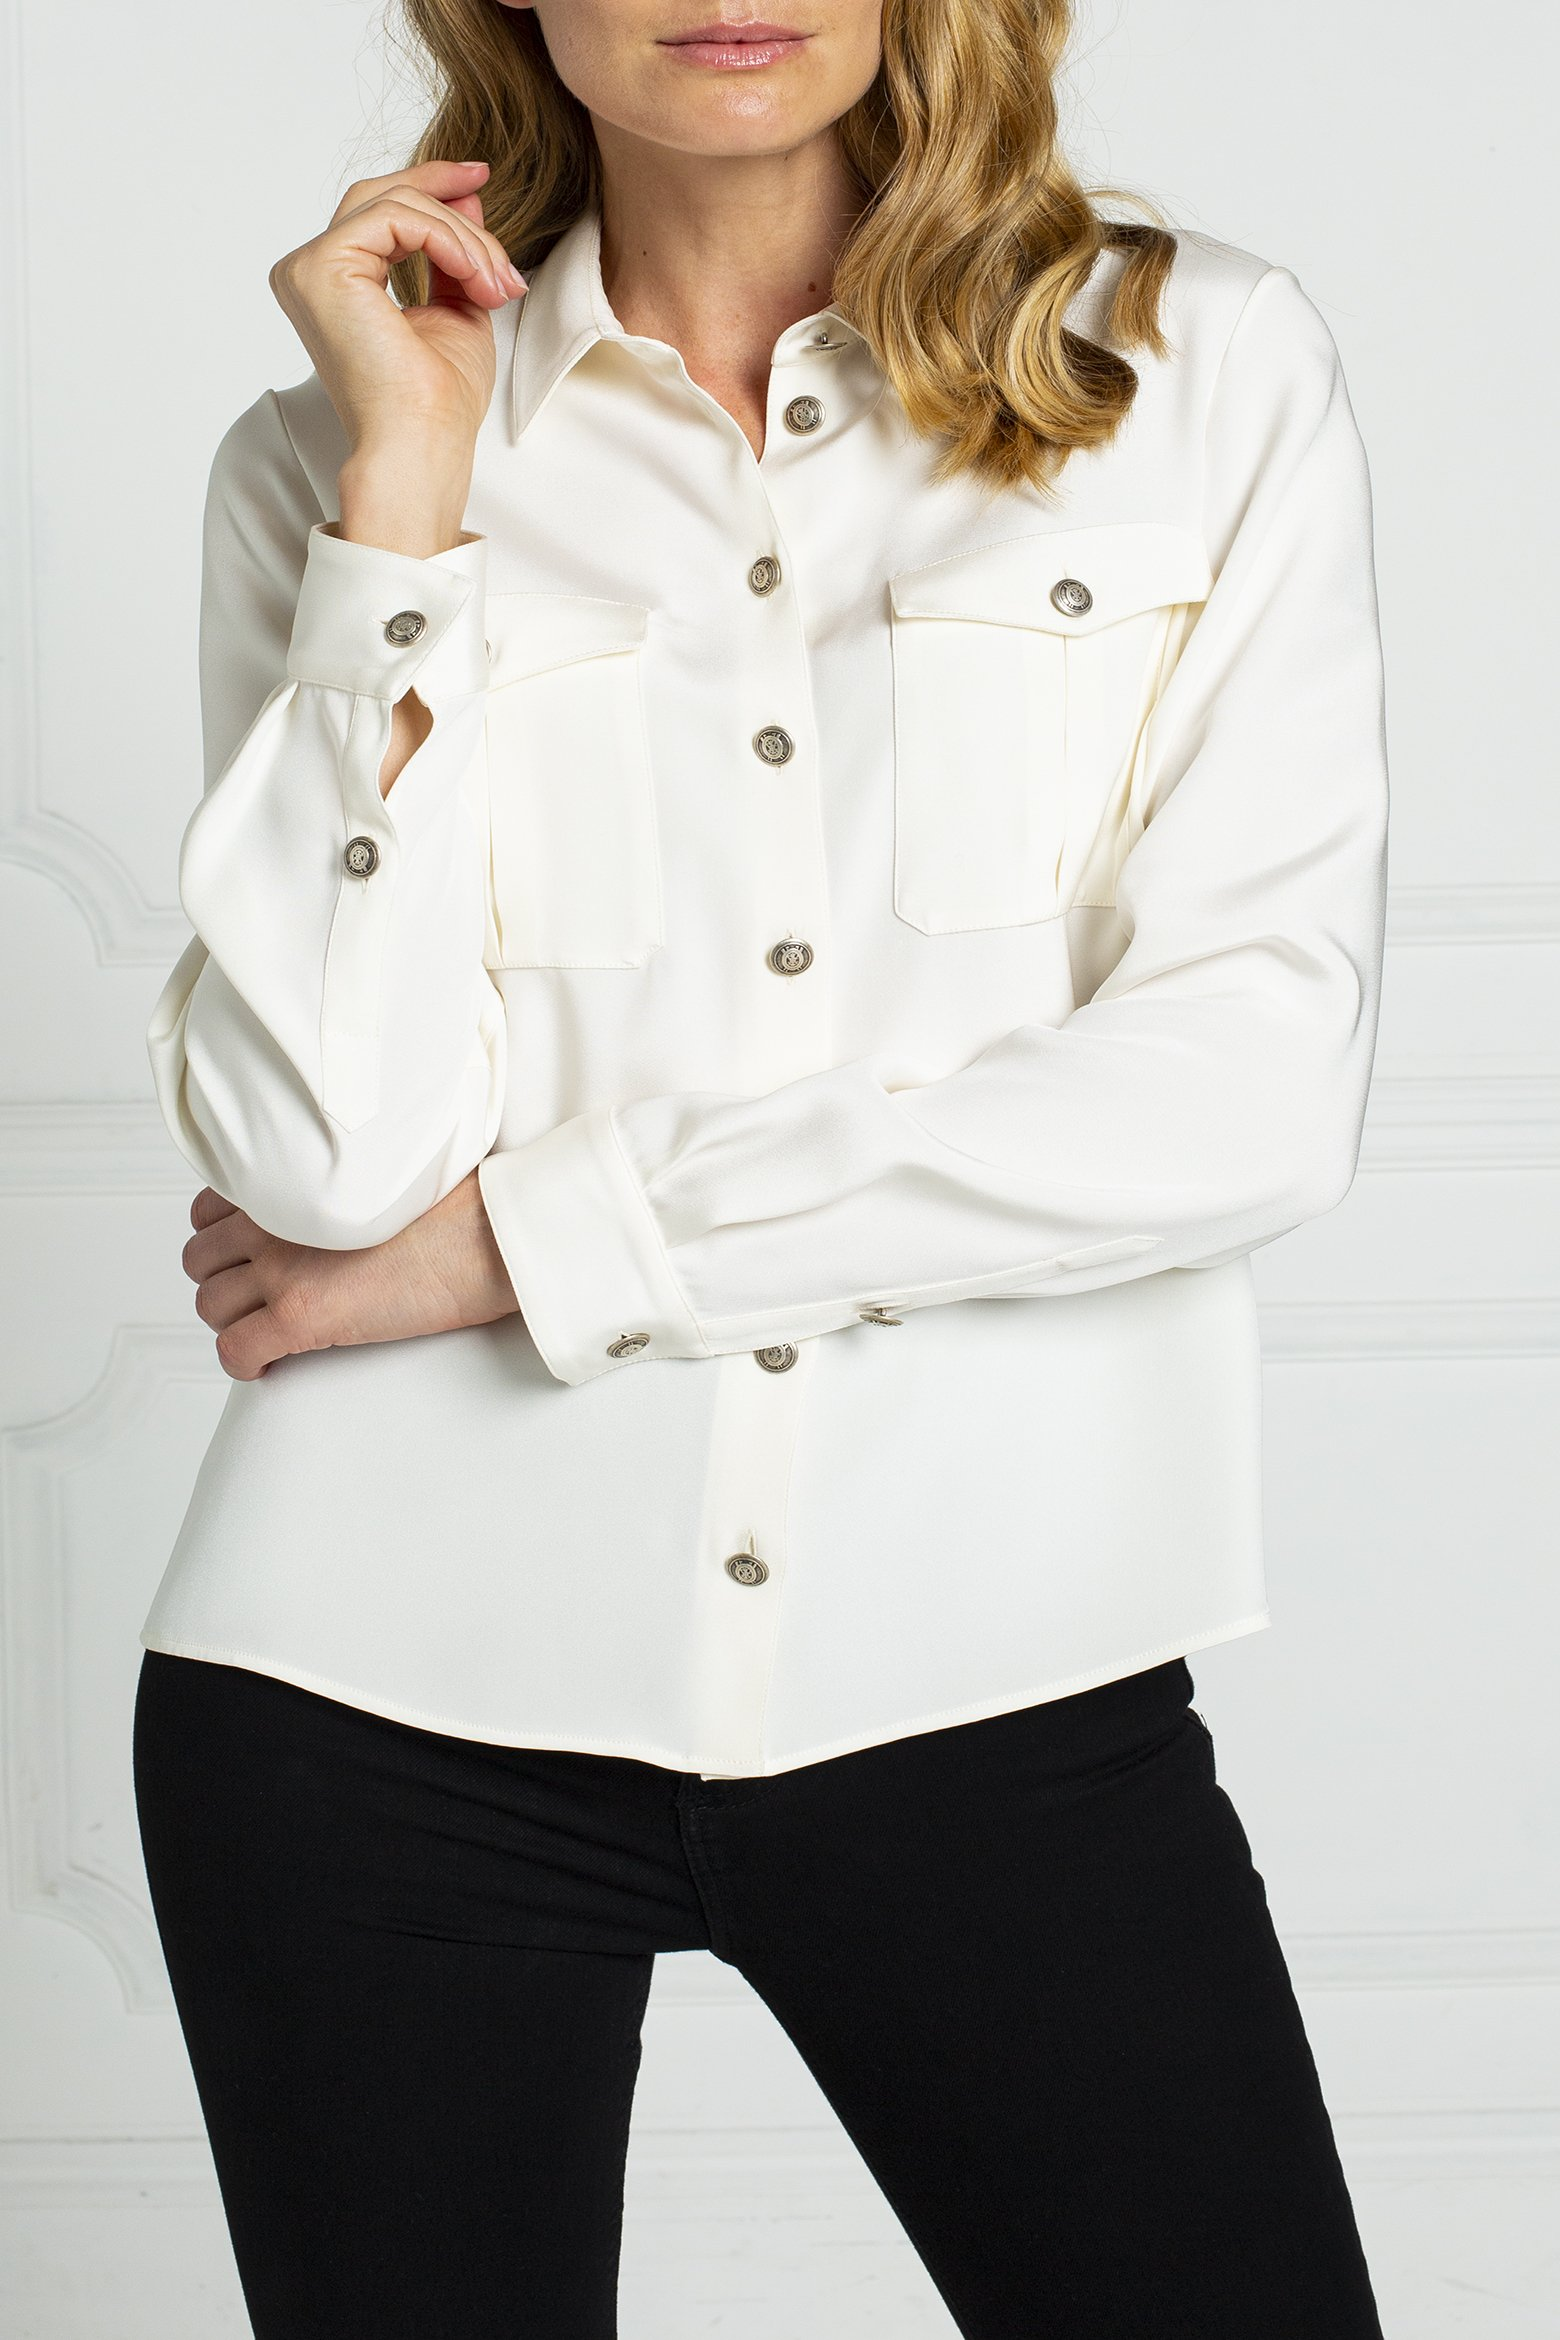 thom-laurence-silk-crepe-blouse-military-style-boxpleated-pockets-silver-buttons-2